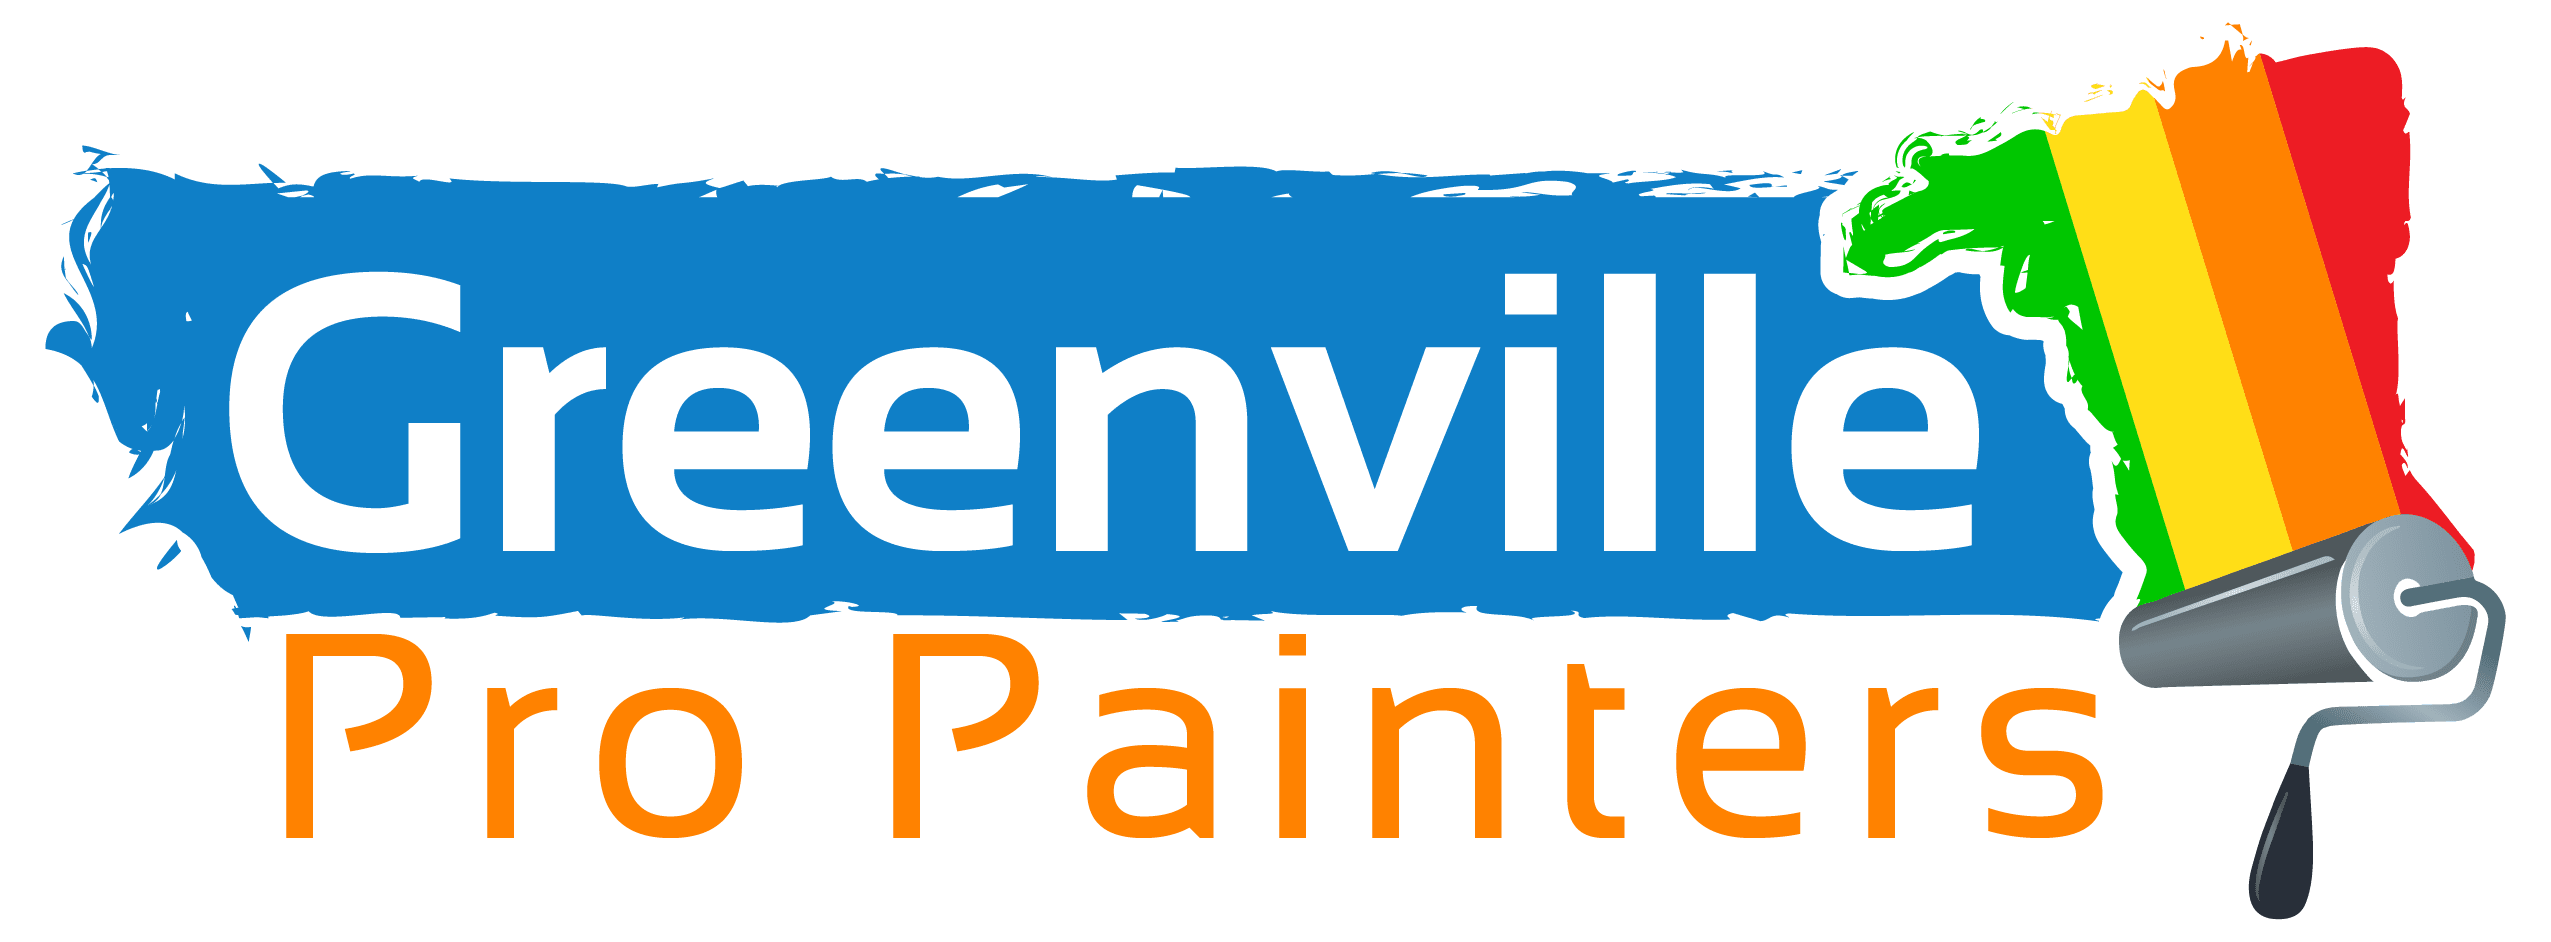 Greenville-Pro-Painters-2.png